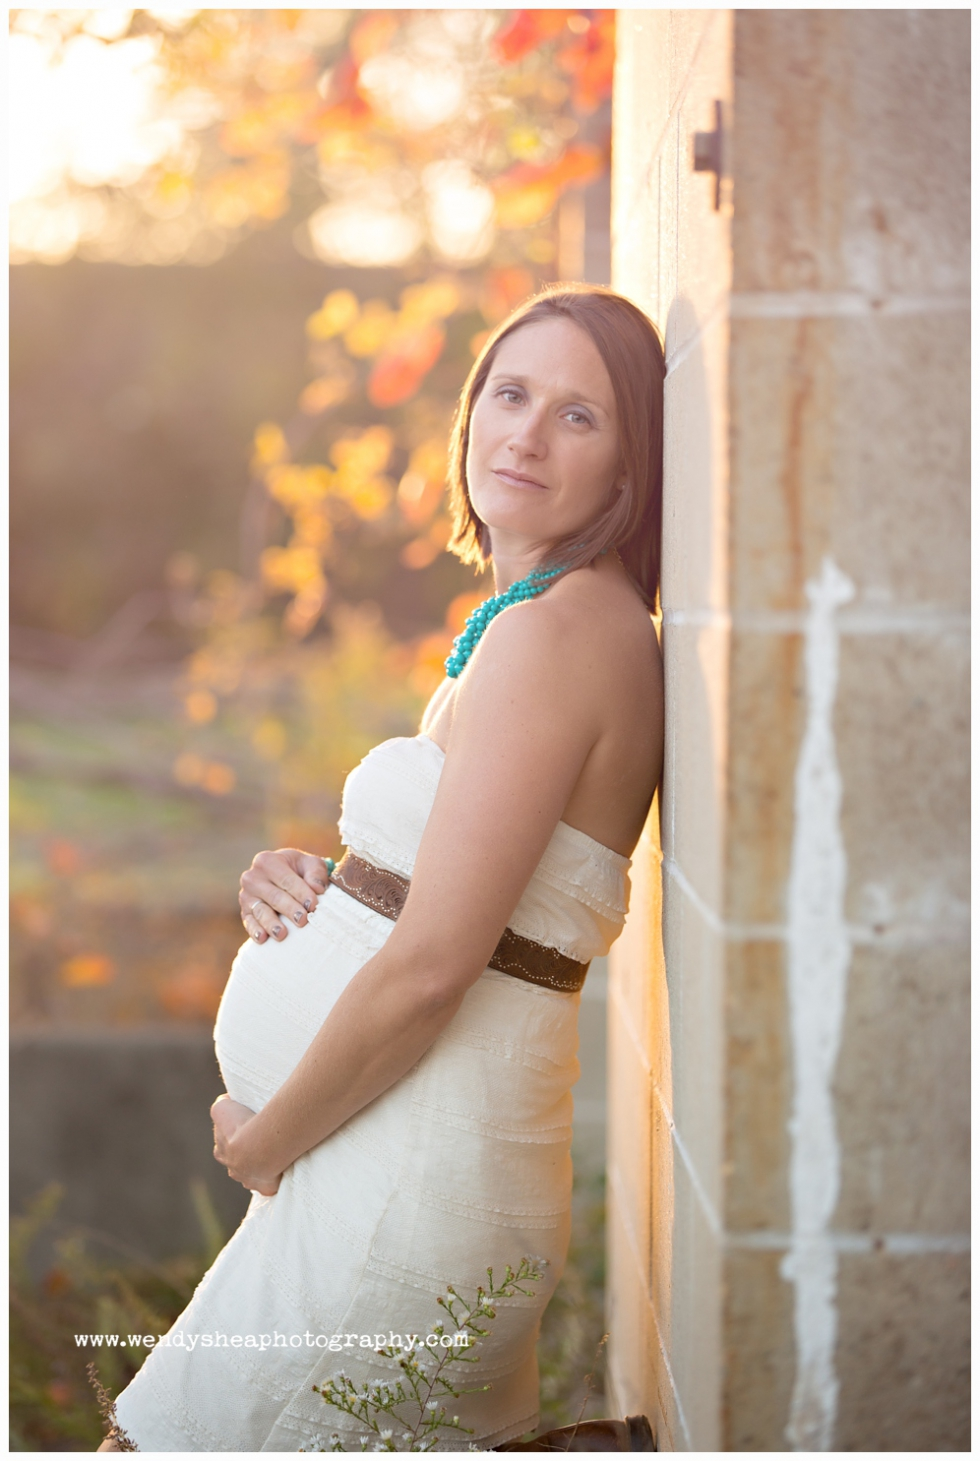 WendySheaPhotography_Massachusetts_Maternity_Photographer_0024